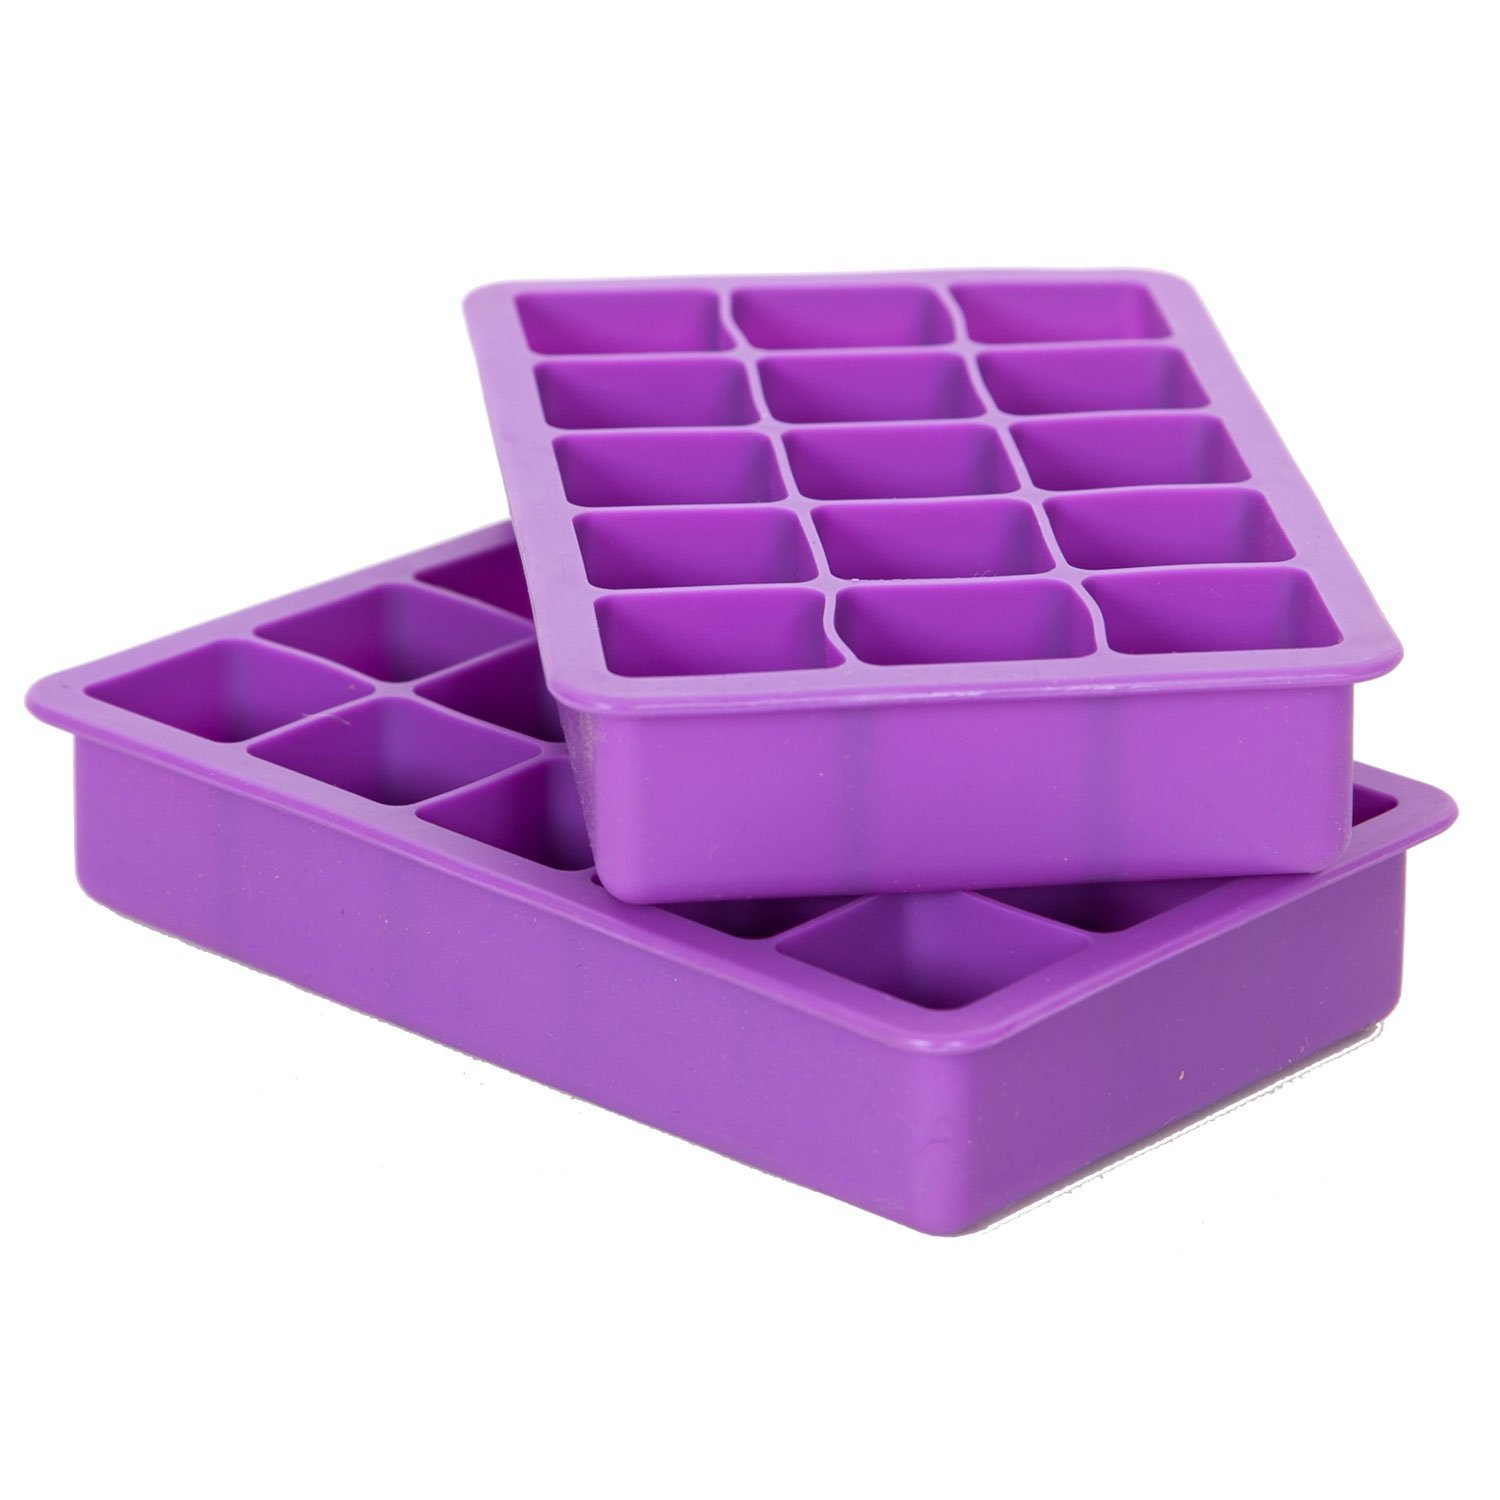 Elbee Home EBH-613 Set Of 2 Silicone Ice Cube Trays Easy Release Pop Out Makes 7.2 x 2.9 x 4.3 inches